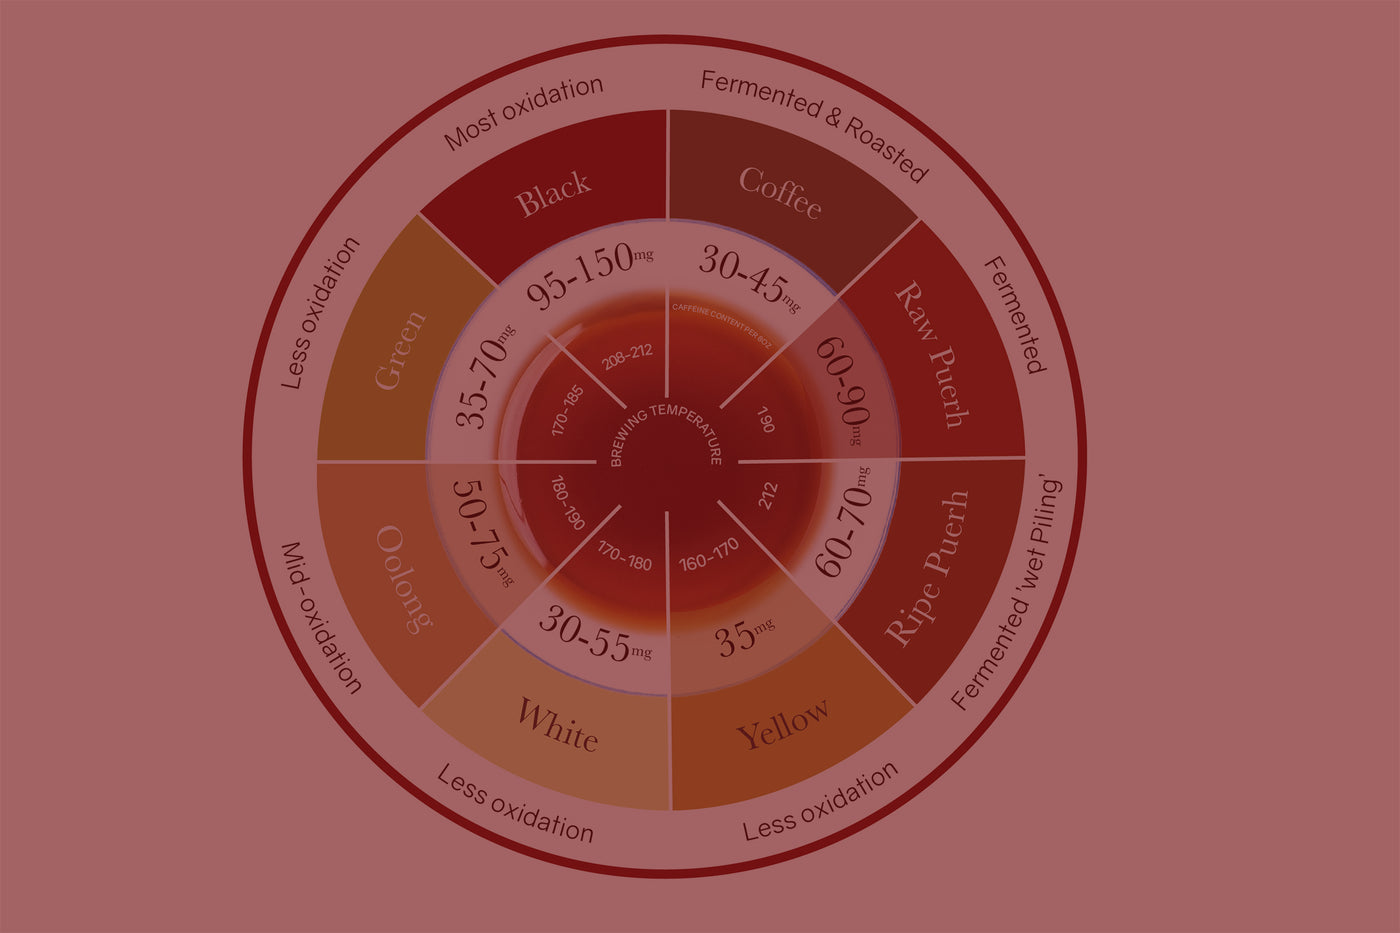 How Does Puerh Compare to Other Teas?